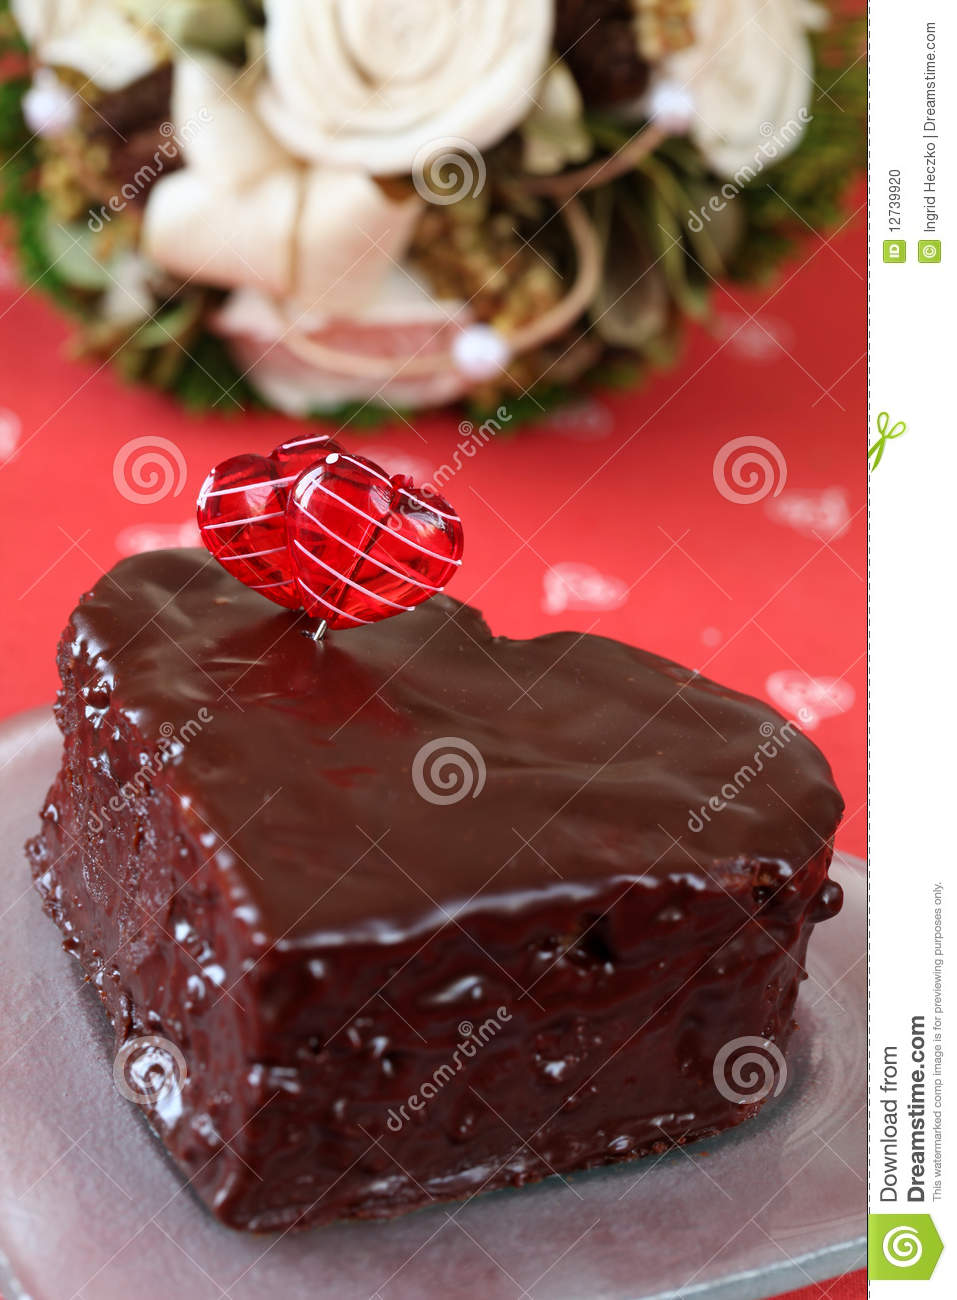 Heart Shaped Chocolate Cake With Heart Decoration Stock ...